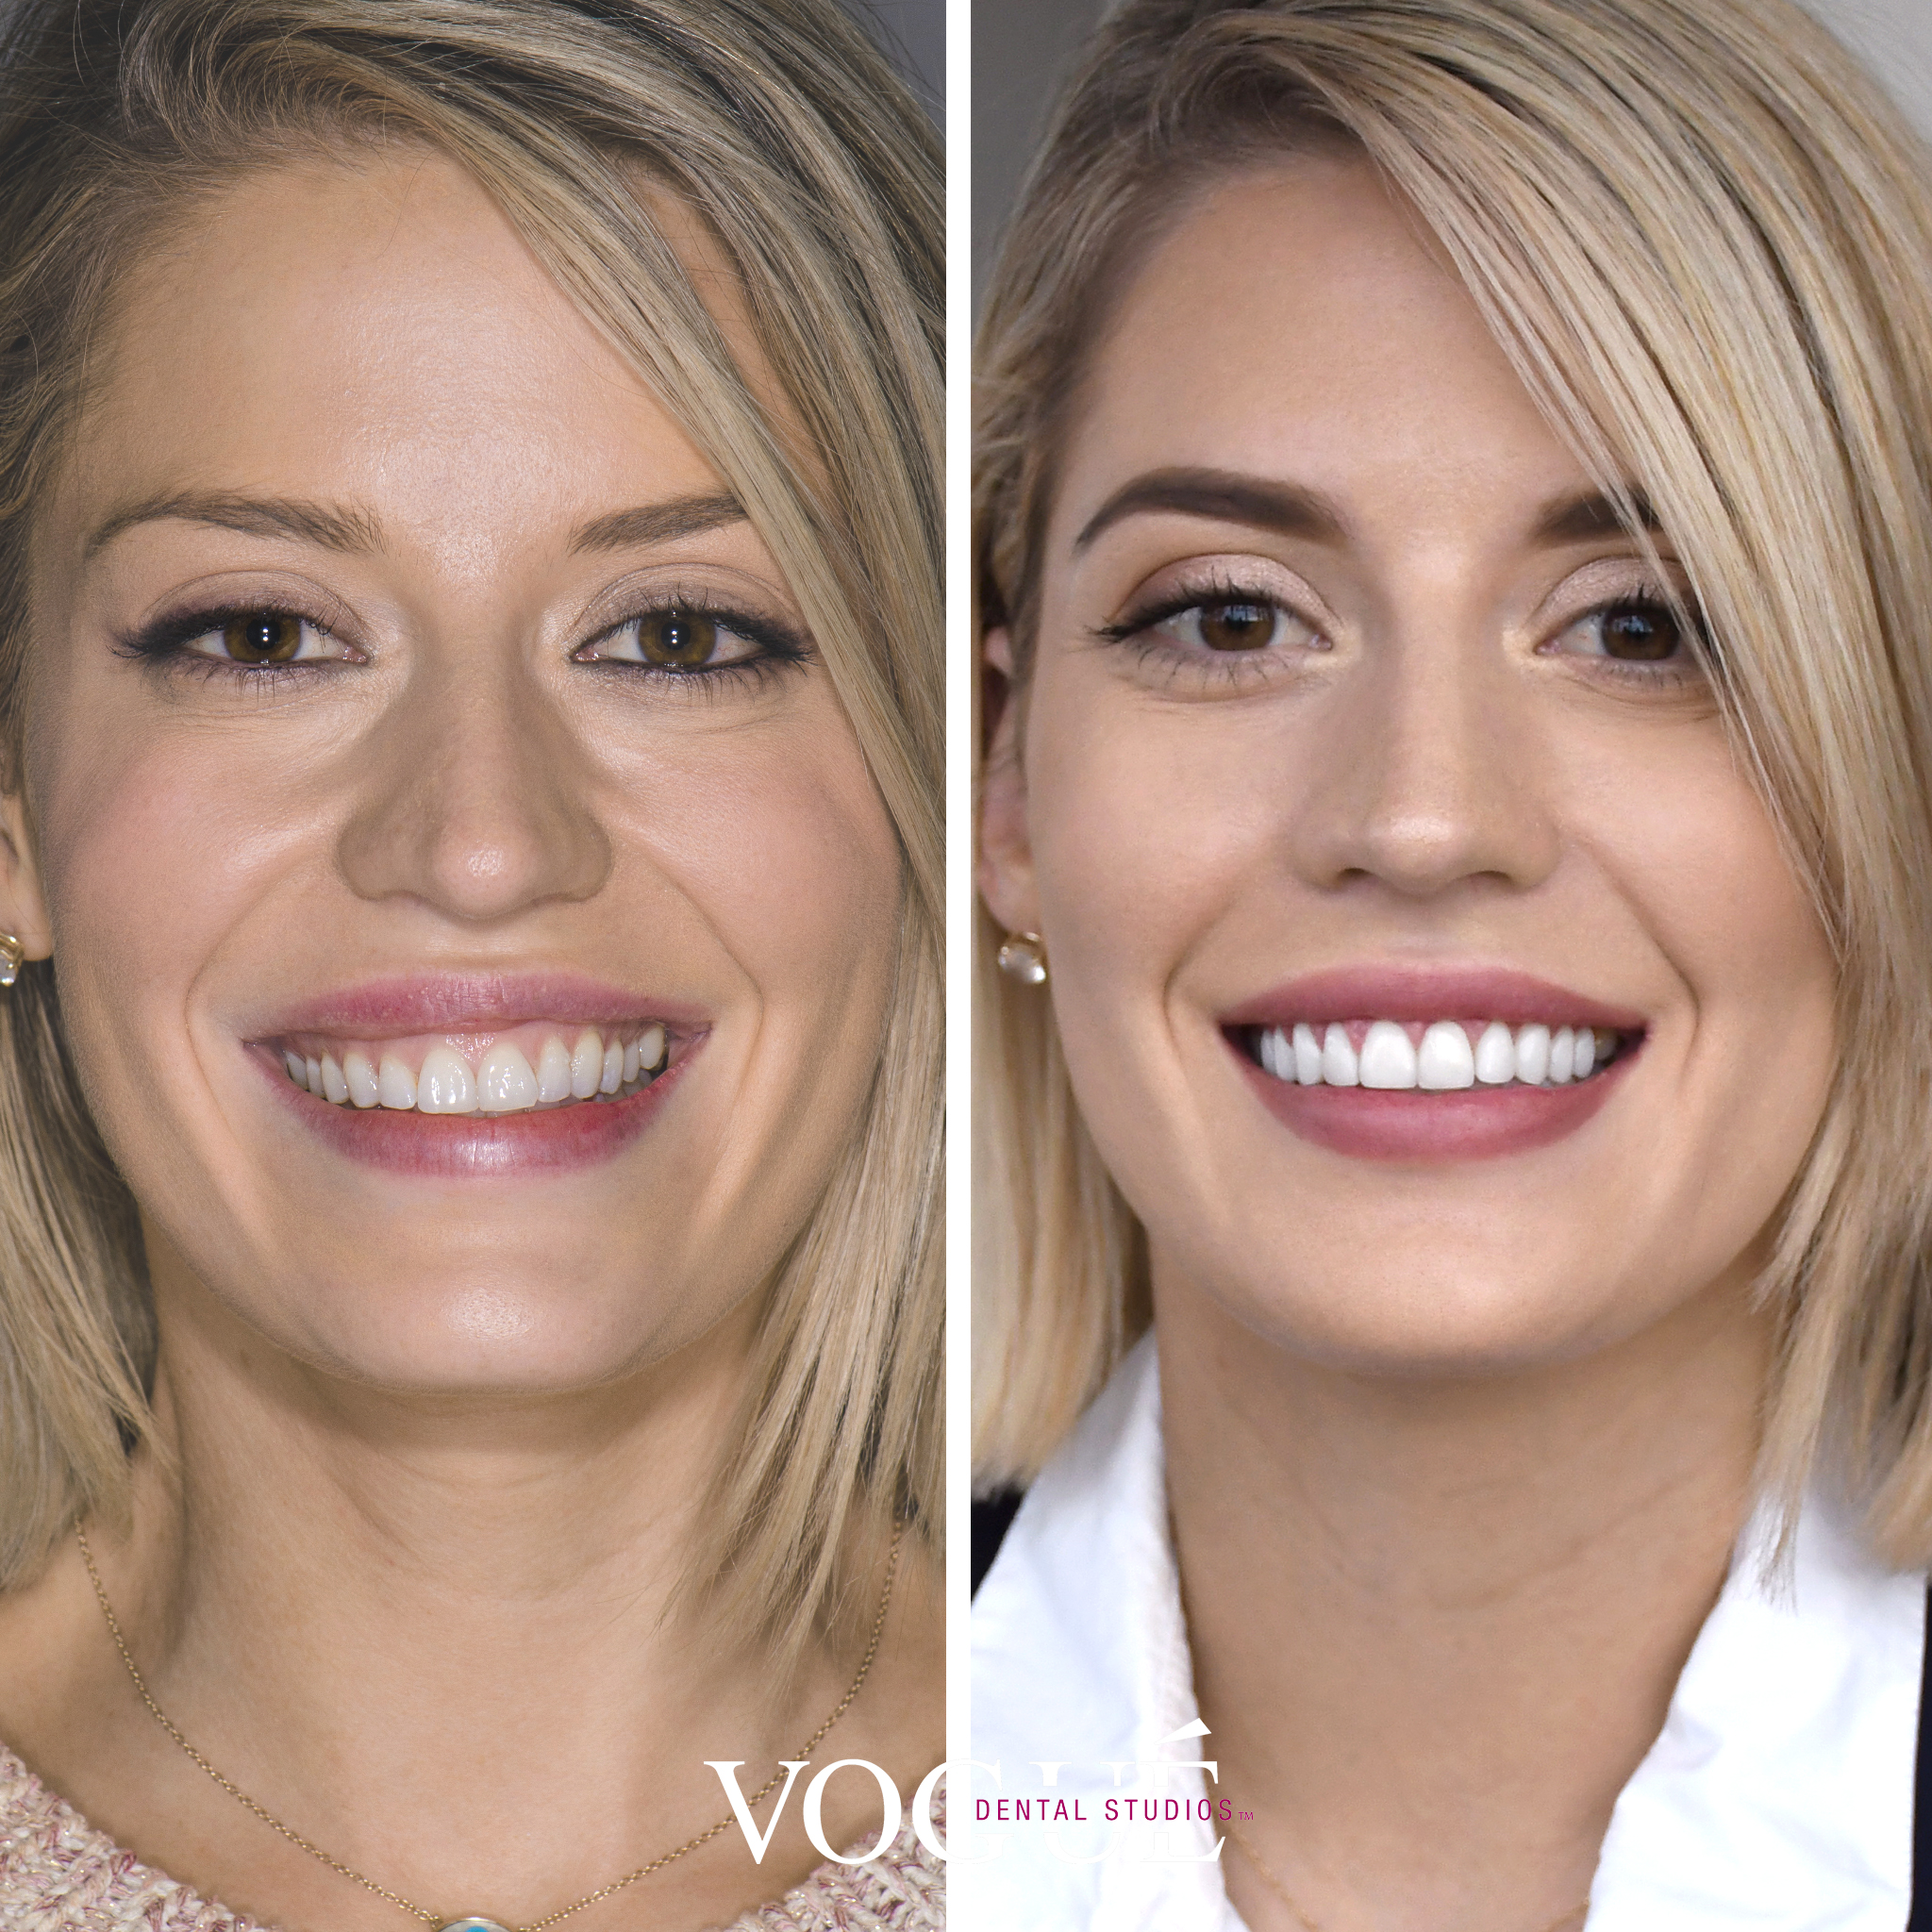 Before and after gummy smile and smile cant correction with porcelain veneers at Vogue Dental Studios - face view Cassie.